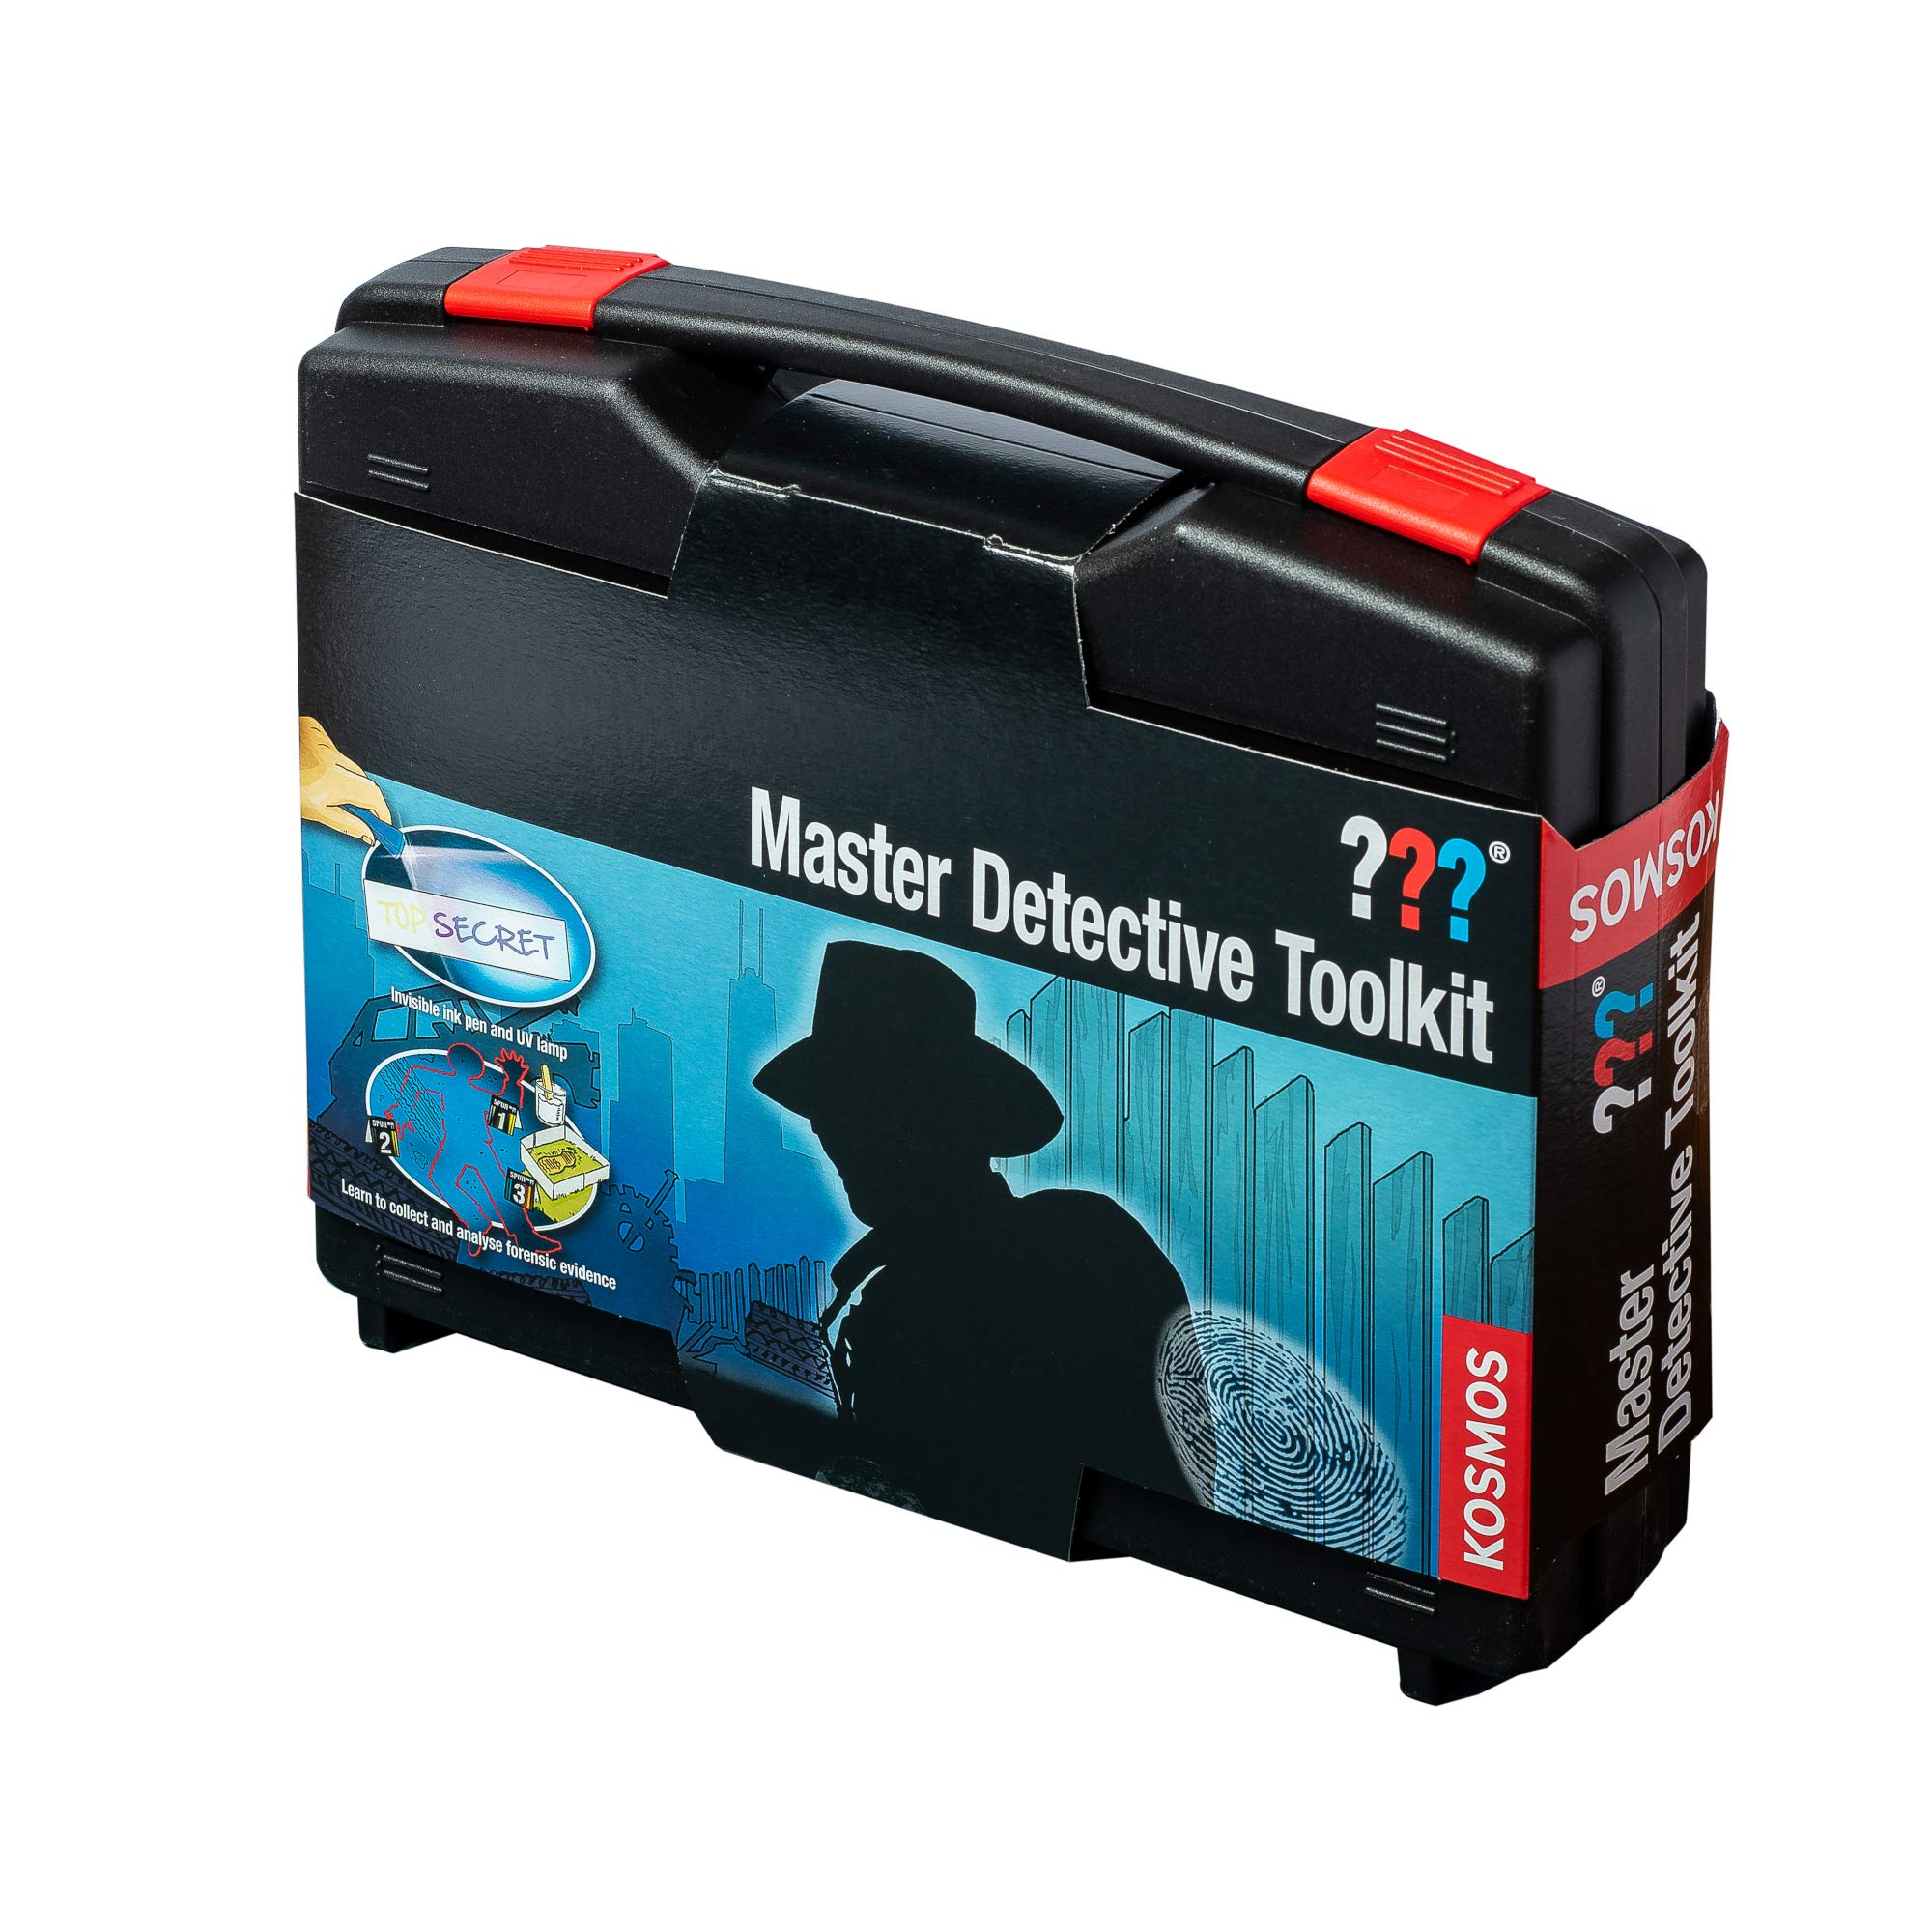 Thames & Kosmos Master Detective Toolkit | Forensic Science Experiment Kit | Fingerprints, Footprints, Tire Tracks | 32-Page, Full-Color Experiment Story Book | Parents' Choice Gold Award Winner by Thames & Kosmos